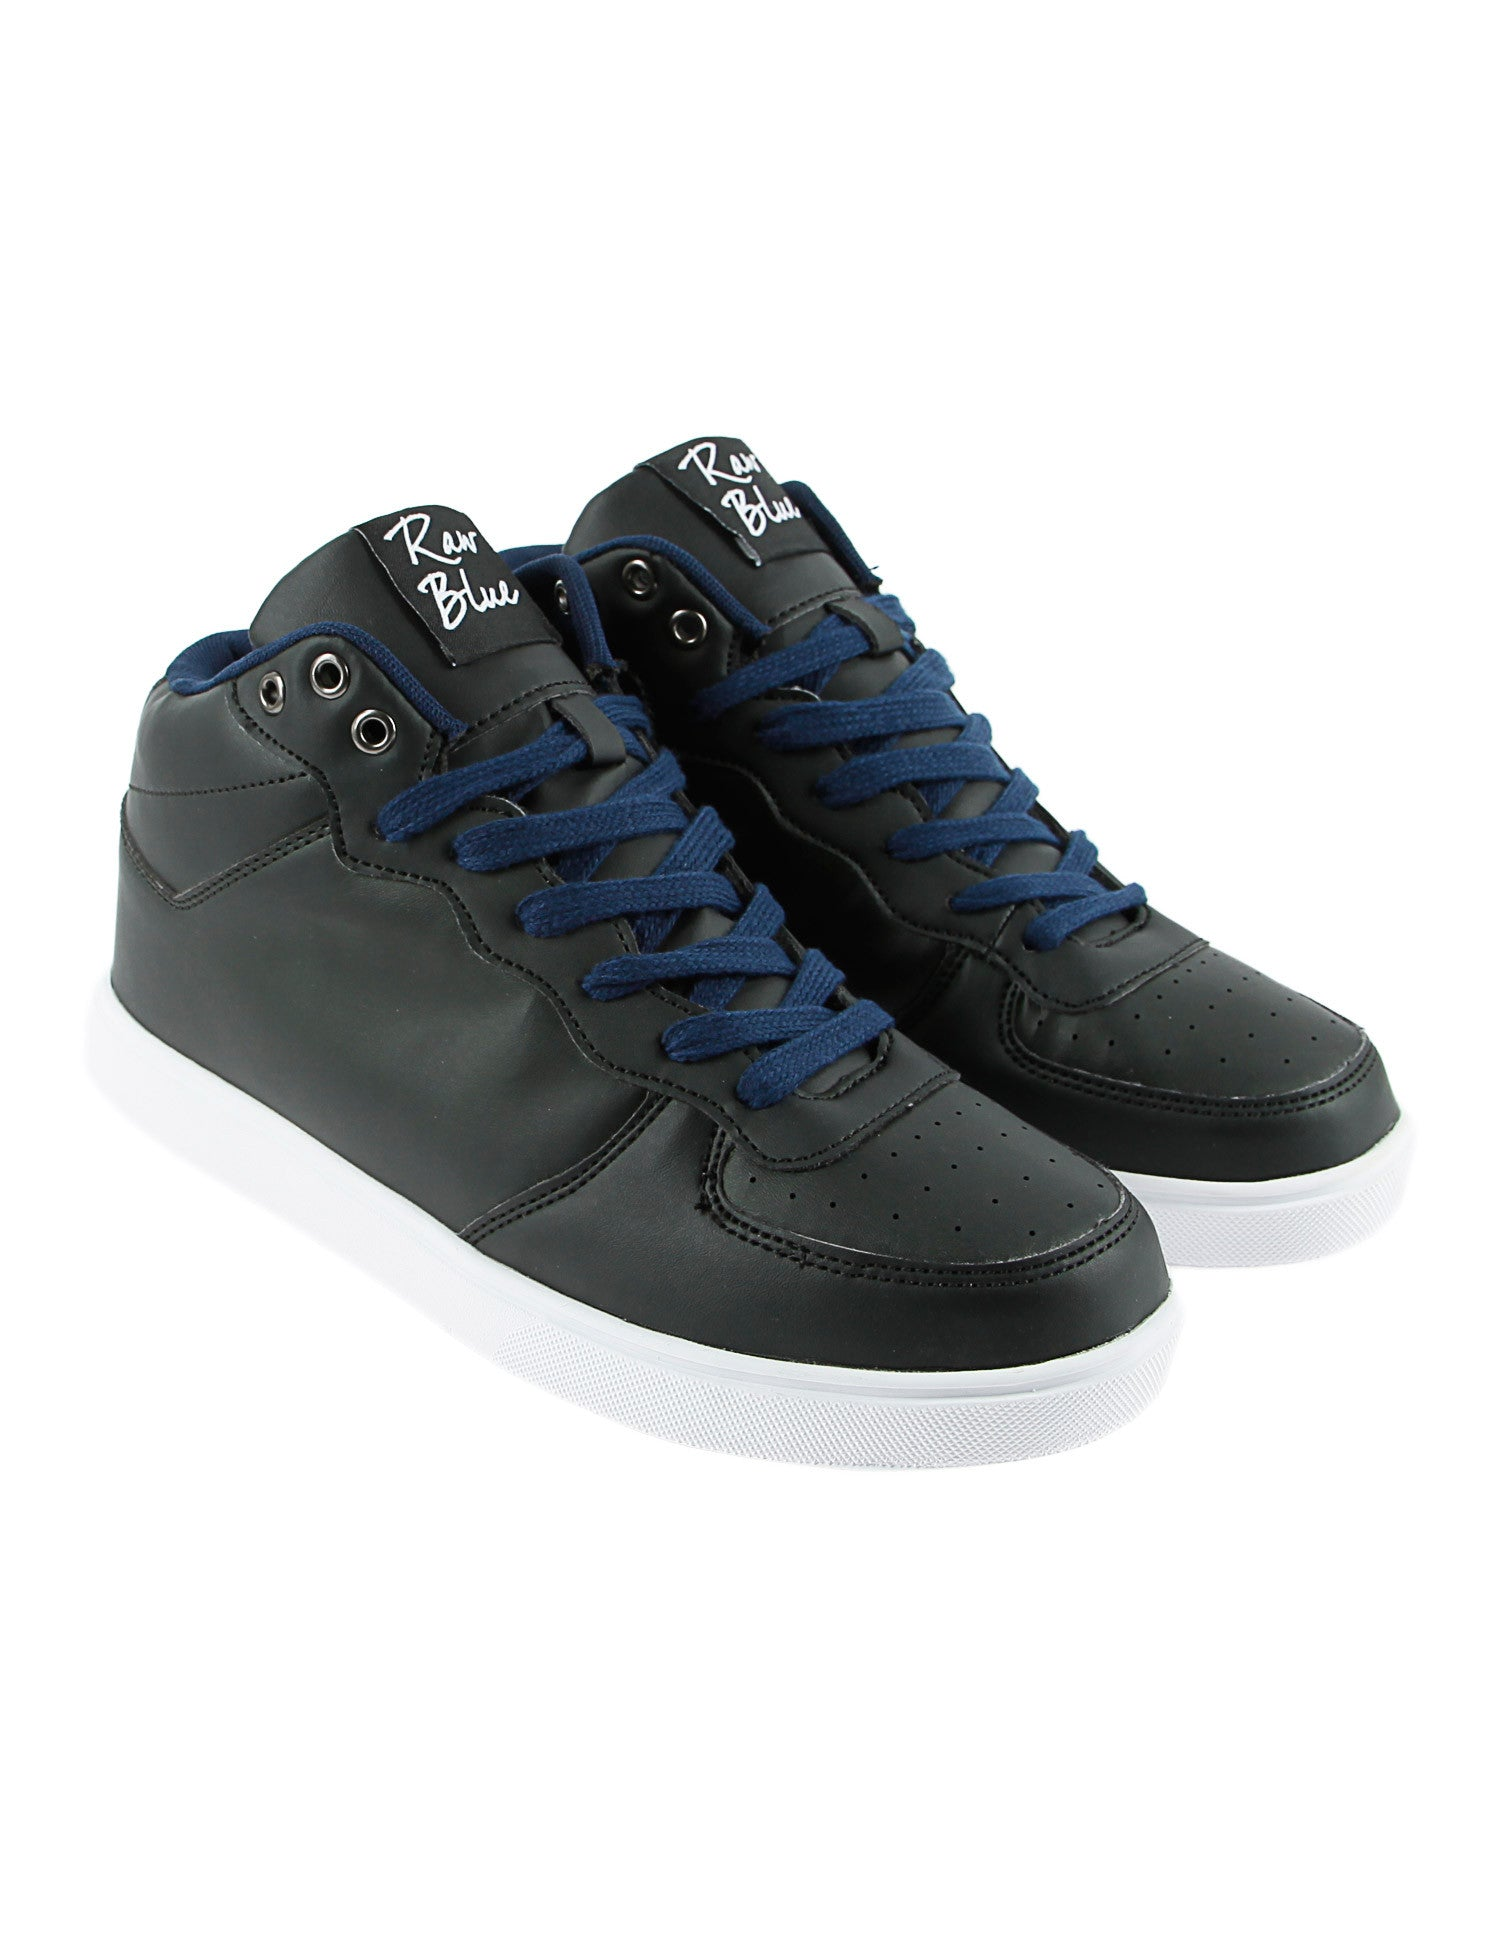 Raw Blue RBS-HIGH-155Y Shoes Navy Black